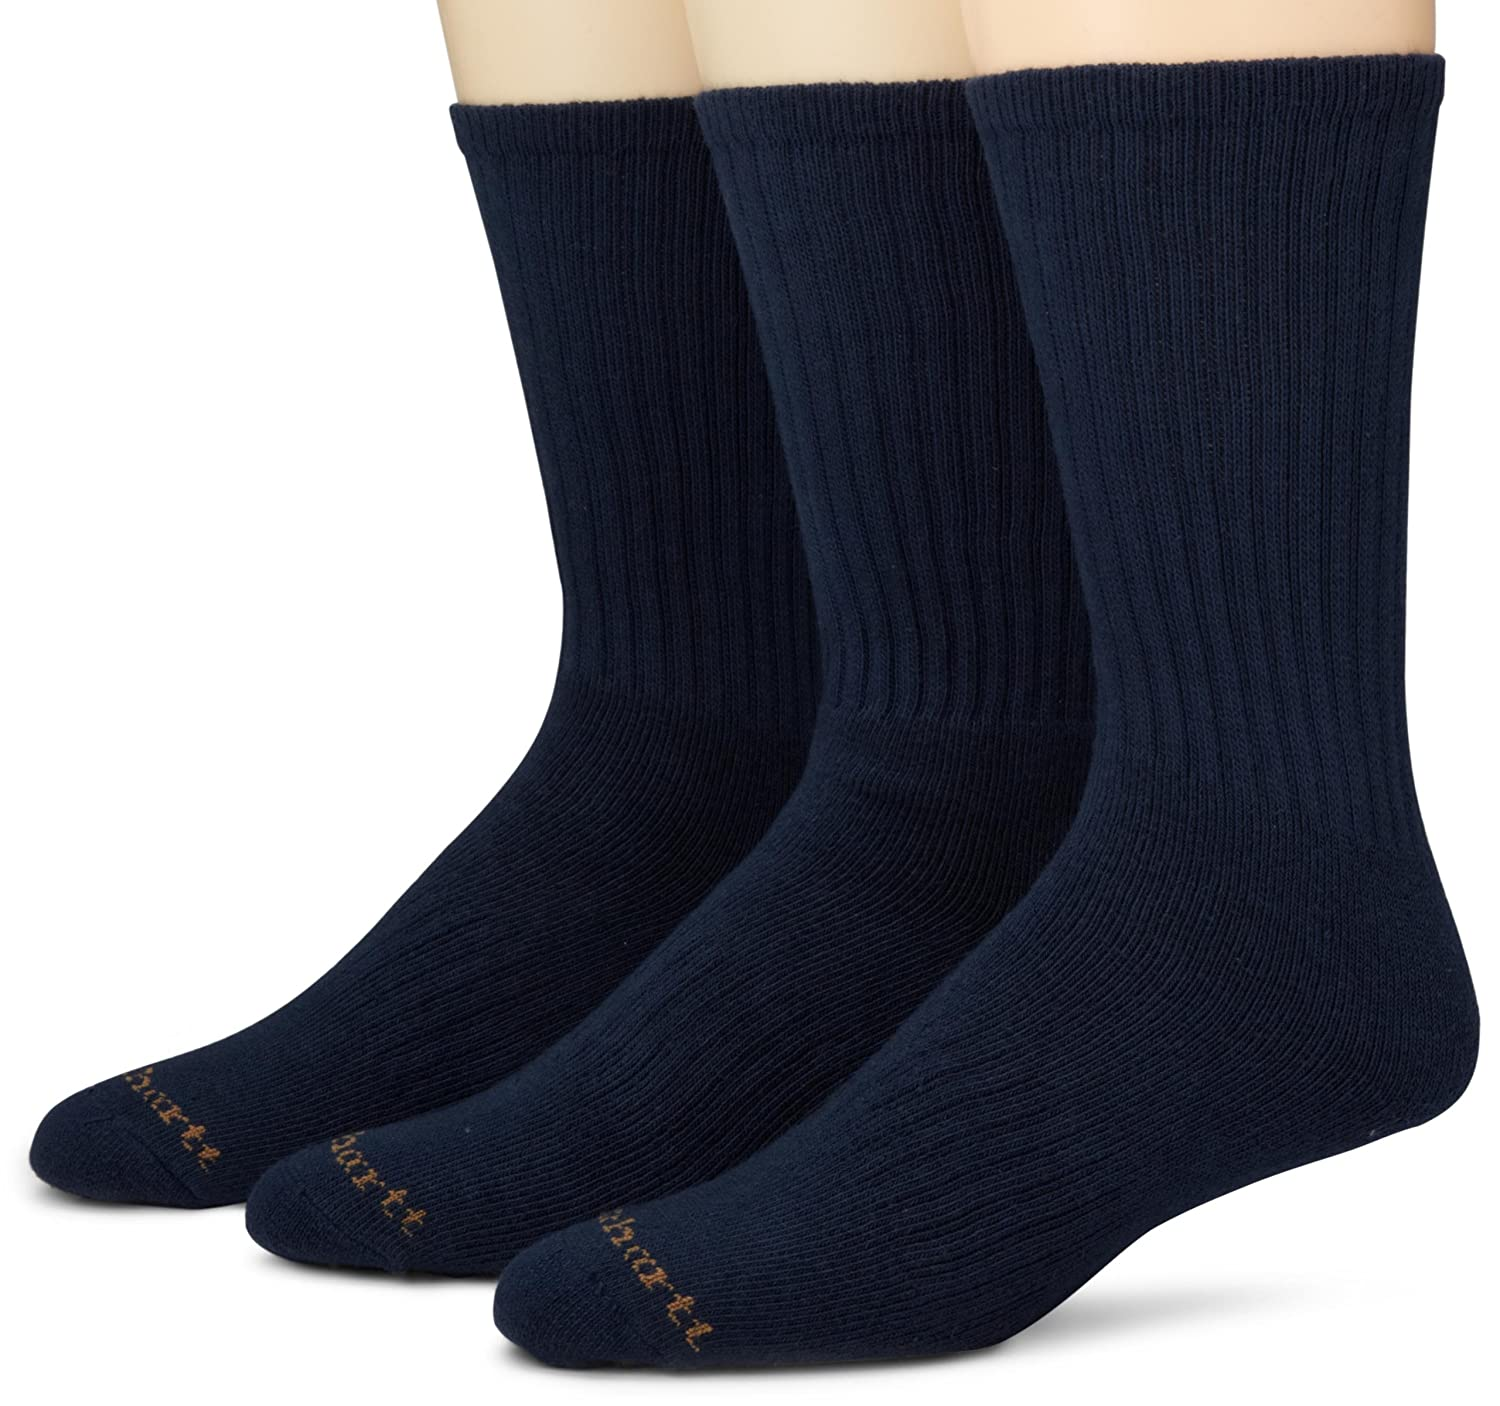 Carhartt Men's Work Wear Cushioned Crew Sock 3-Pack Black Large A3208-3